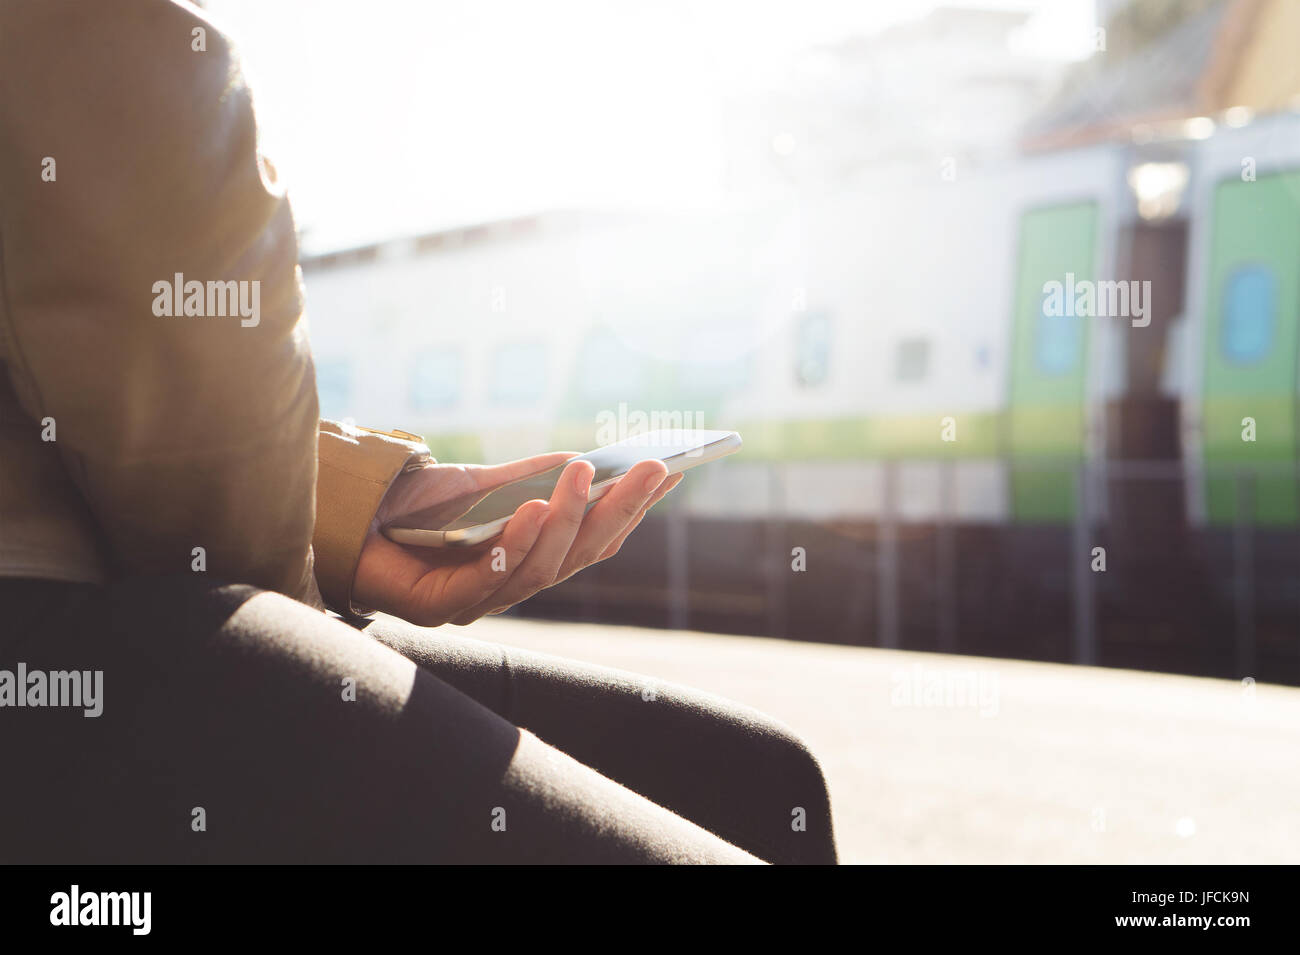 Woman buying ticket or checking schedule with mobile phone in the train platform. Smartphone and trainModern public - Stock Image